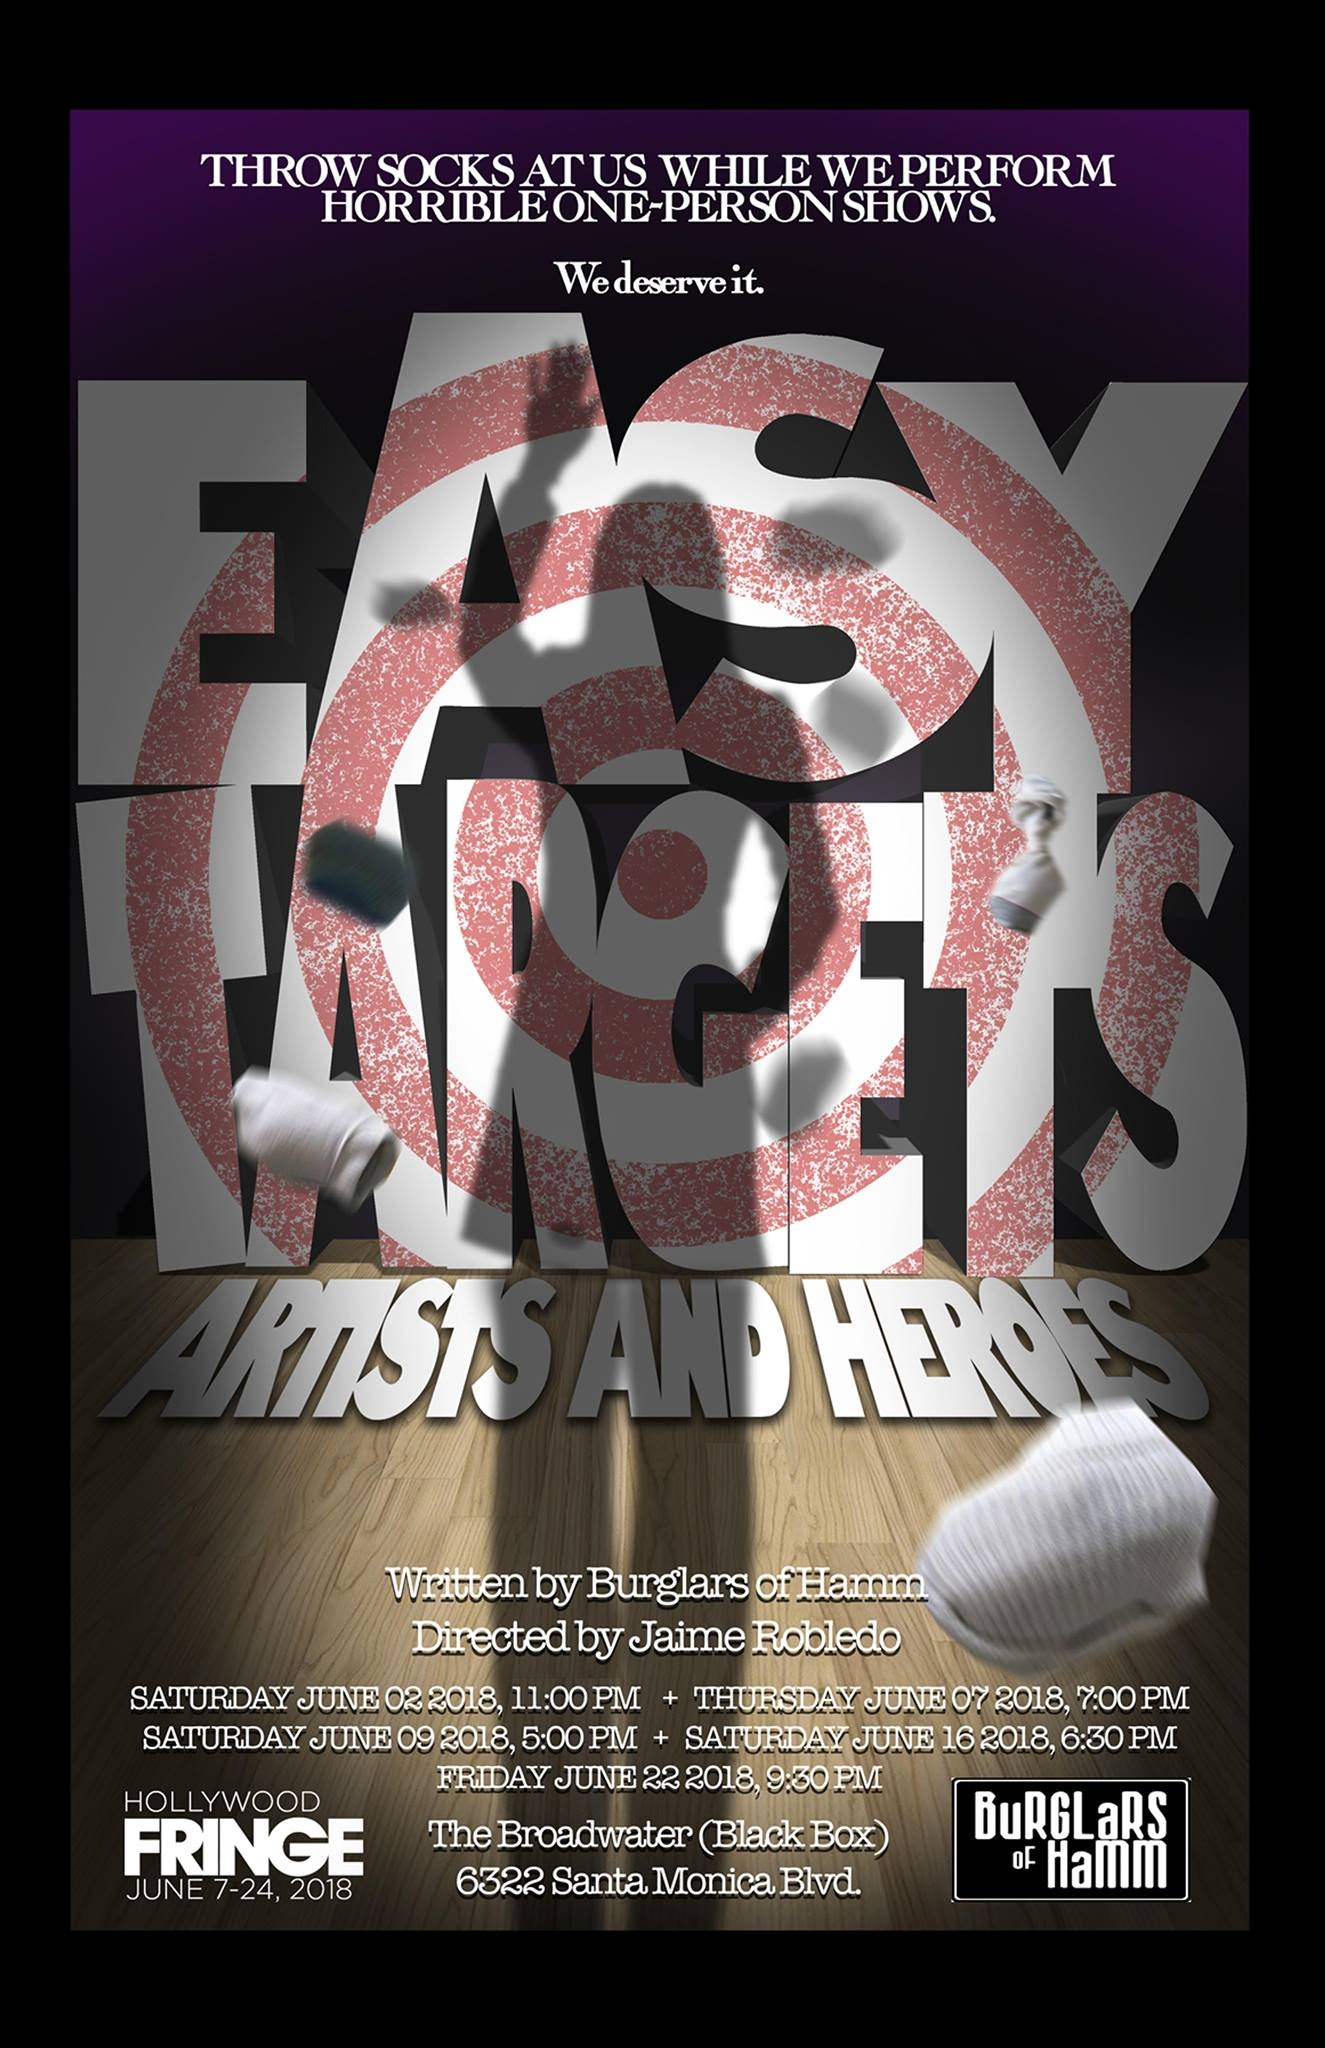 """The winner of the 2017 Hollywood Fringe Best Comedy Award returns with four new pieces, including a world premier piece starring Hugo Armstrong.EASY TARGETS is for every audience member who has sat in the dark at a bad play thinking they now know what prison must be like. It allows the audience to act out the fantasy of punishing their jailers. A satire of one-person-shows, EASY TARGETS presents 4 short solo shows and then invites the audience to show their """"appreciation"""" by pummeling the performers with rolled-up socks any time they feel bored, annoyed, patronized, manipulated, etc. Each audience of EASY TARGETS forms a pack working to remind the performers, writers and designers that if they fail to respect the audience, they will suffer the sock!   Better Lemons -""""One of the most fun evenings you will ever have at the theater...such a hoot""""   This Stage LA - """"So funny and so smart... gorgeous...relentlessly entertaining and beautifully performed.""""   Stage Raw - """"About the most fun one can have in the theatre.... exquisitely calibrated... a genuinely hilarious production, and a Fringe must-see."""" (Top Ten)   Gia On The Move - """"The most fun you will have at Fringe...So creatively absurd is the comedy and so galvanizing is the writing, directing and performances... you may be in jeopardy of spending an entire pay day check on socks! Brilliant!""""   See It Or Skip It -""""Oh my Goodness, I had so much fun... I cried because I was laughing so hard...If you can get a ticket to this, you won't be disappointed... a must-see.... just go, get there!""""   fringereview.com - """"Brilliant comedic minds... razor-sharp... tight and astute performances... by golly, you just want to knock Clark Gable's hat off his dumb head""""   ScopingLA - """"Want to get that pent up aggression out of your system...? ' Easy Targets'at Sacred Fools is here for you... incredibly entertaining...these talented actors are eager to see what your pitching arm can deliver. Come at 'em!""""   Haunting - """"Masterful blend """